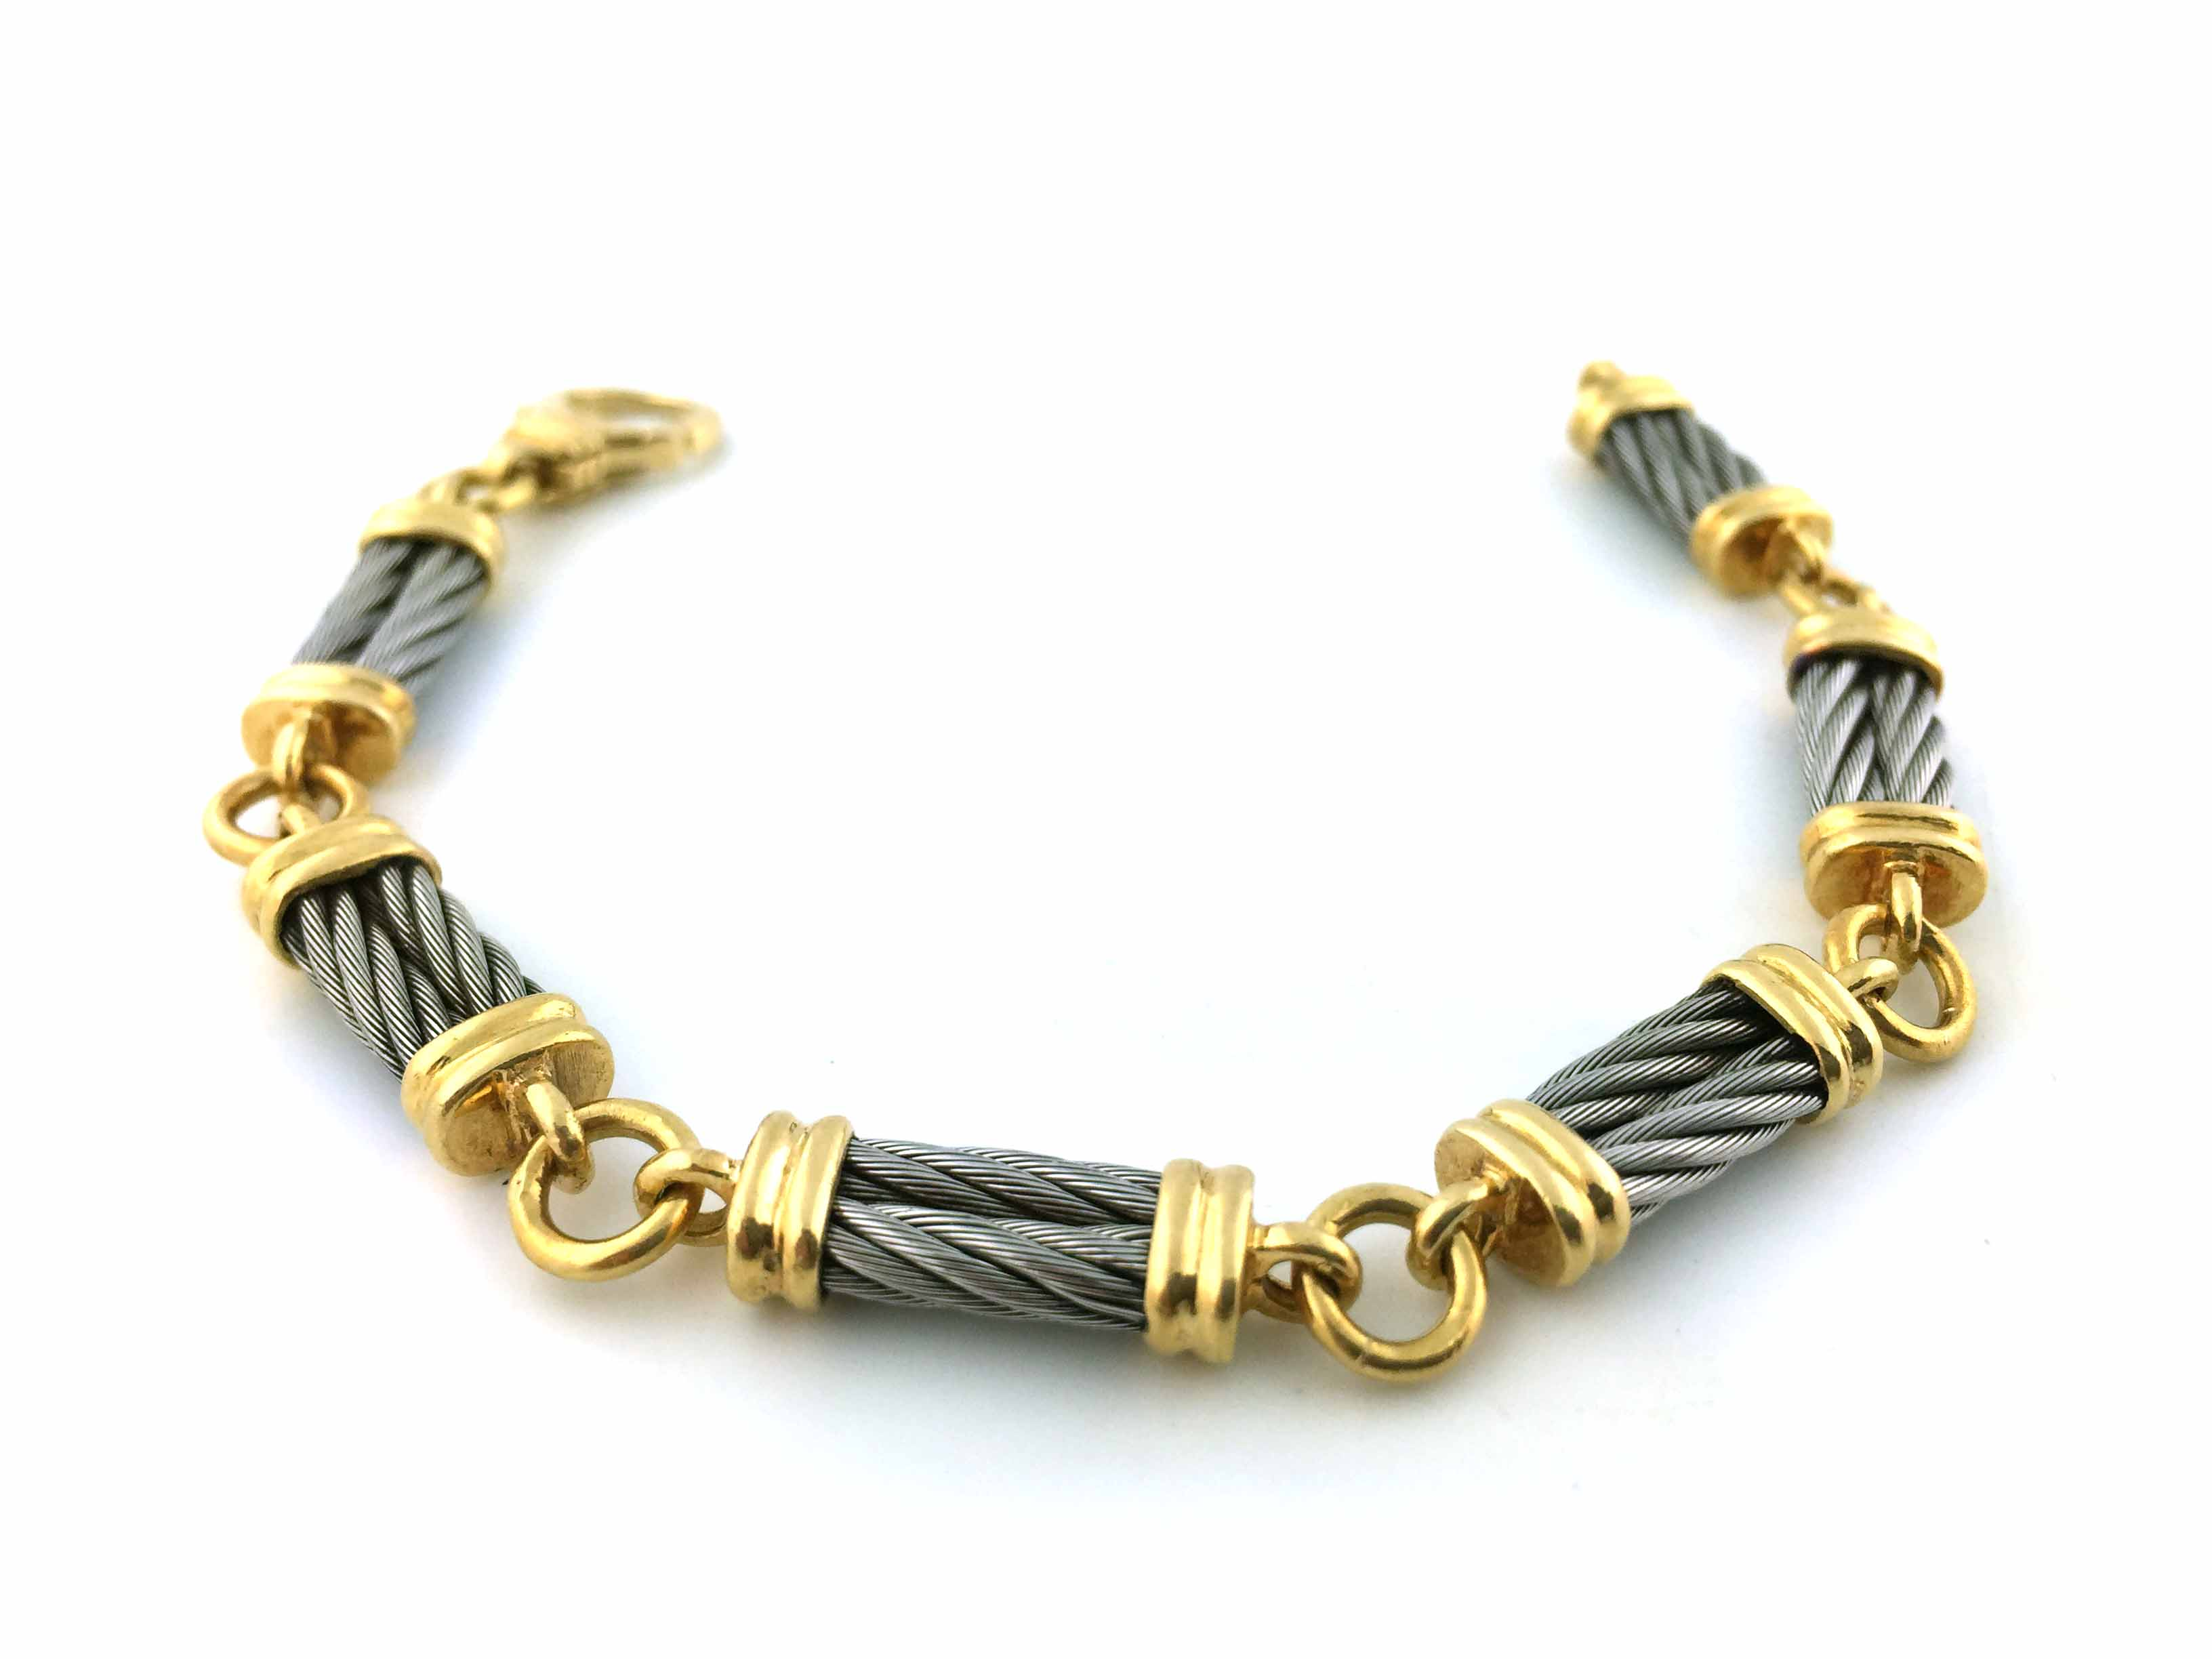 18K Yellow Gold and Steel Bracelet